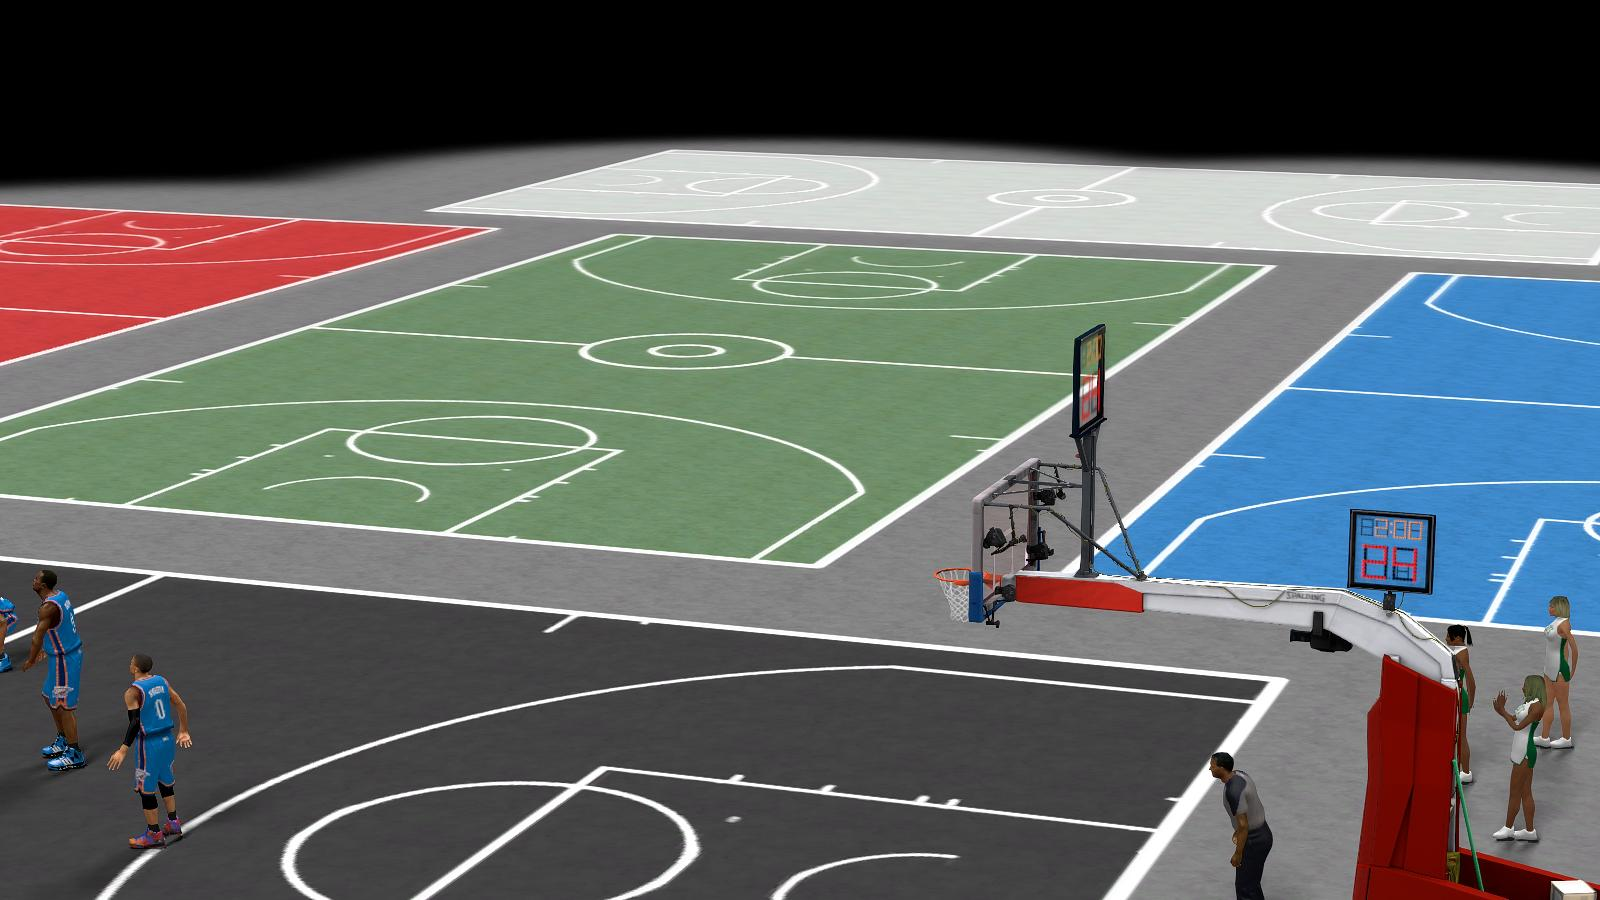 NBA 2K14 Street Mod Failed MultiCourt